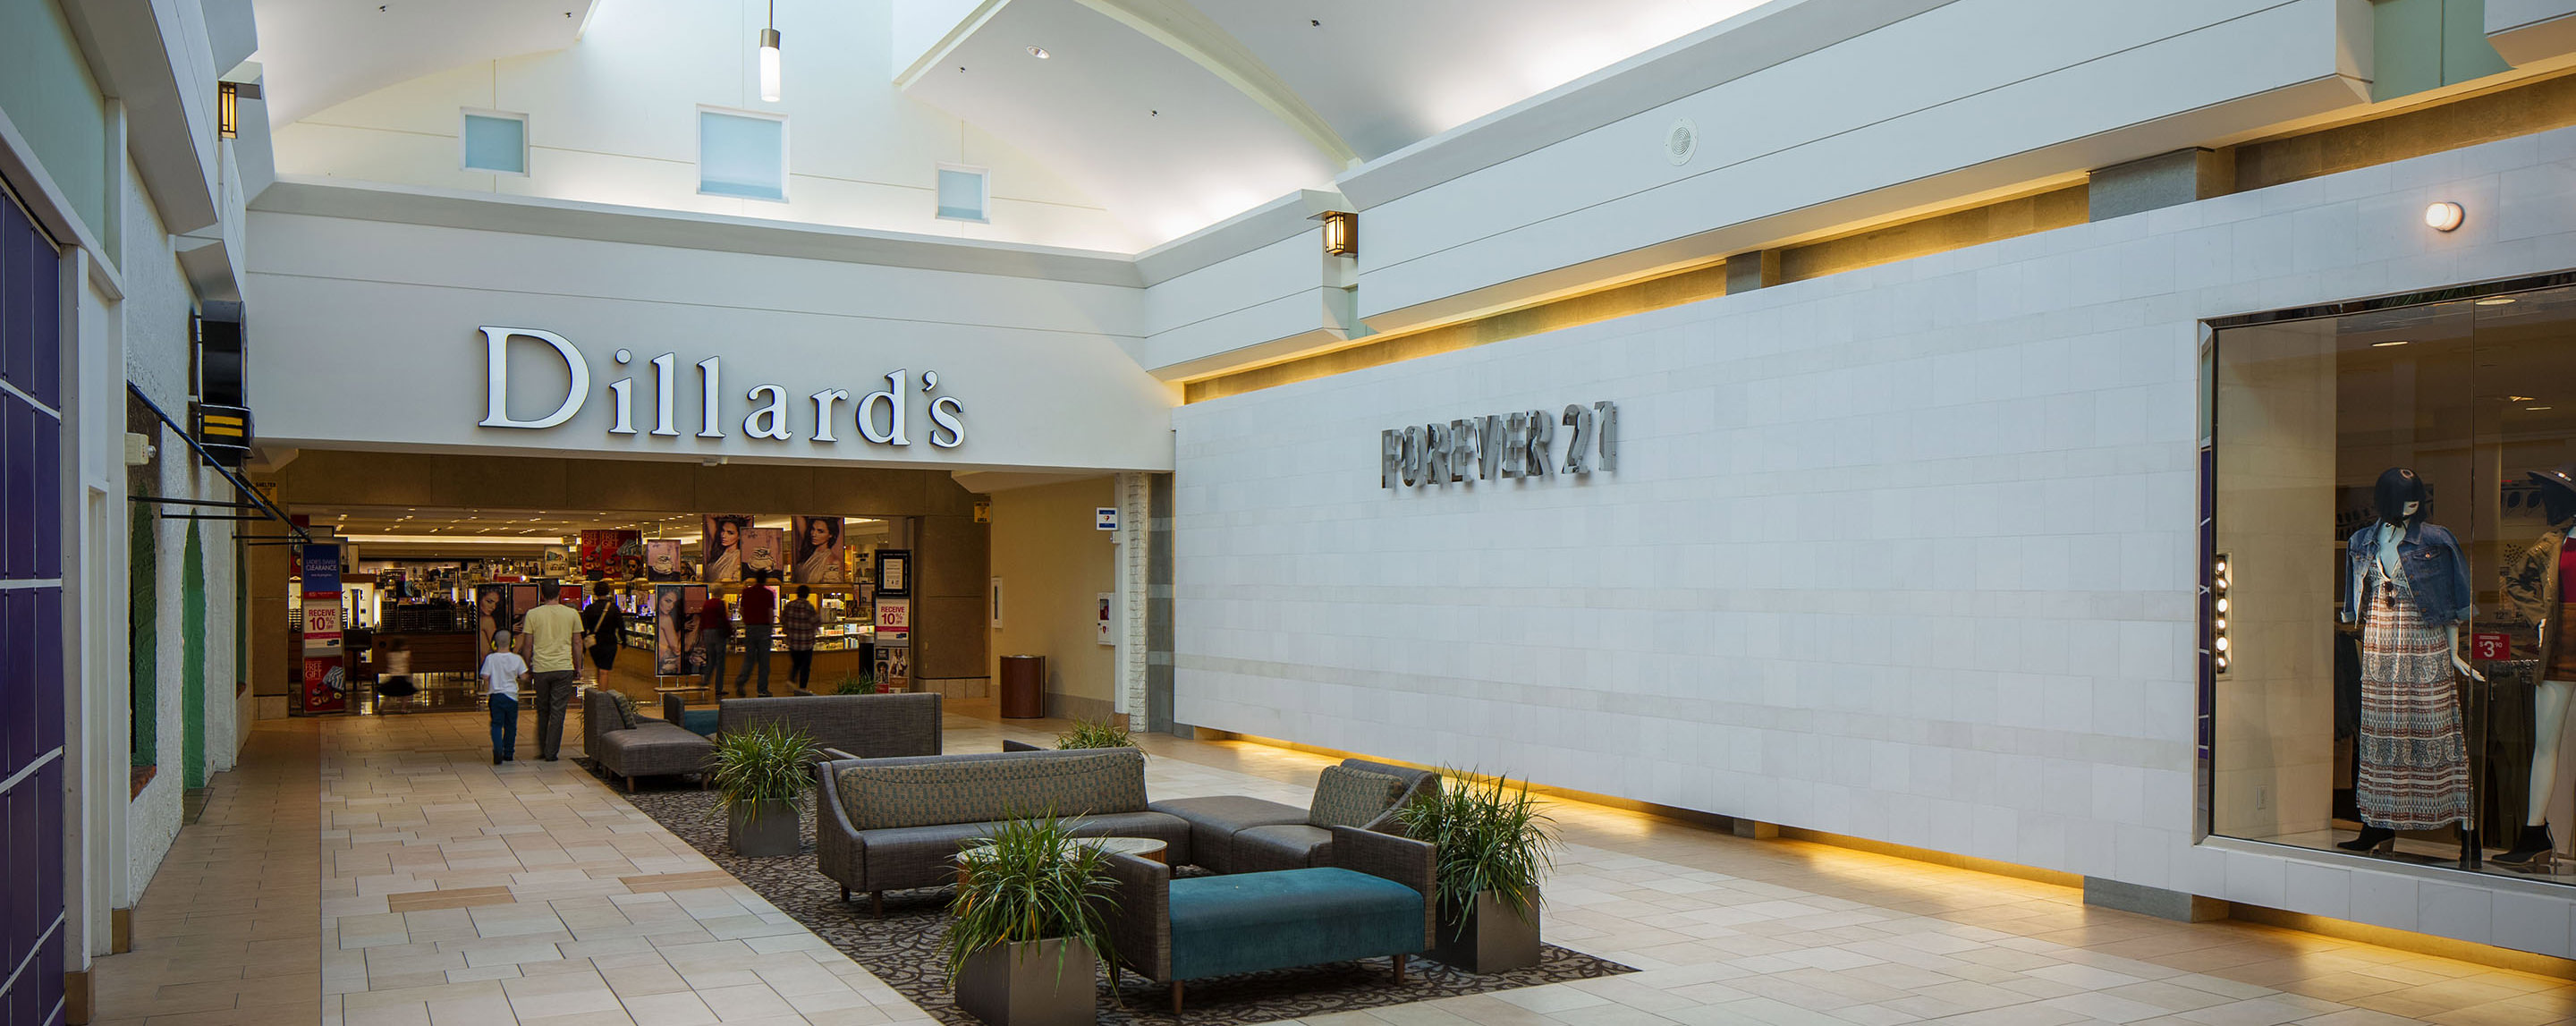 Dillard's and Forever 21 surround a comfortable common area at Sooner Mall.